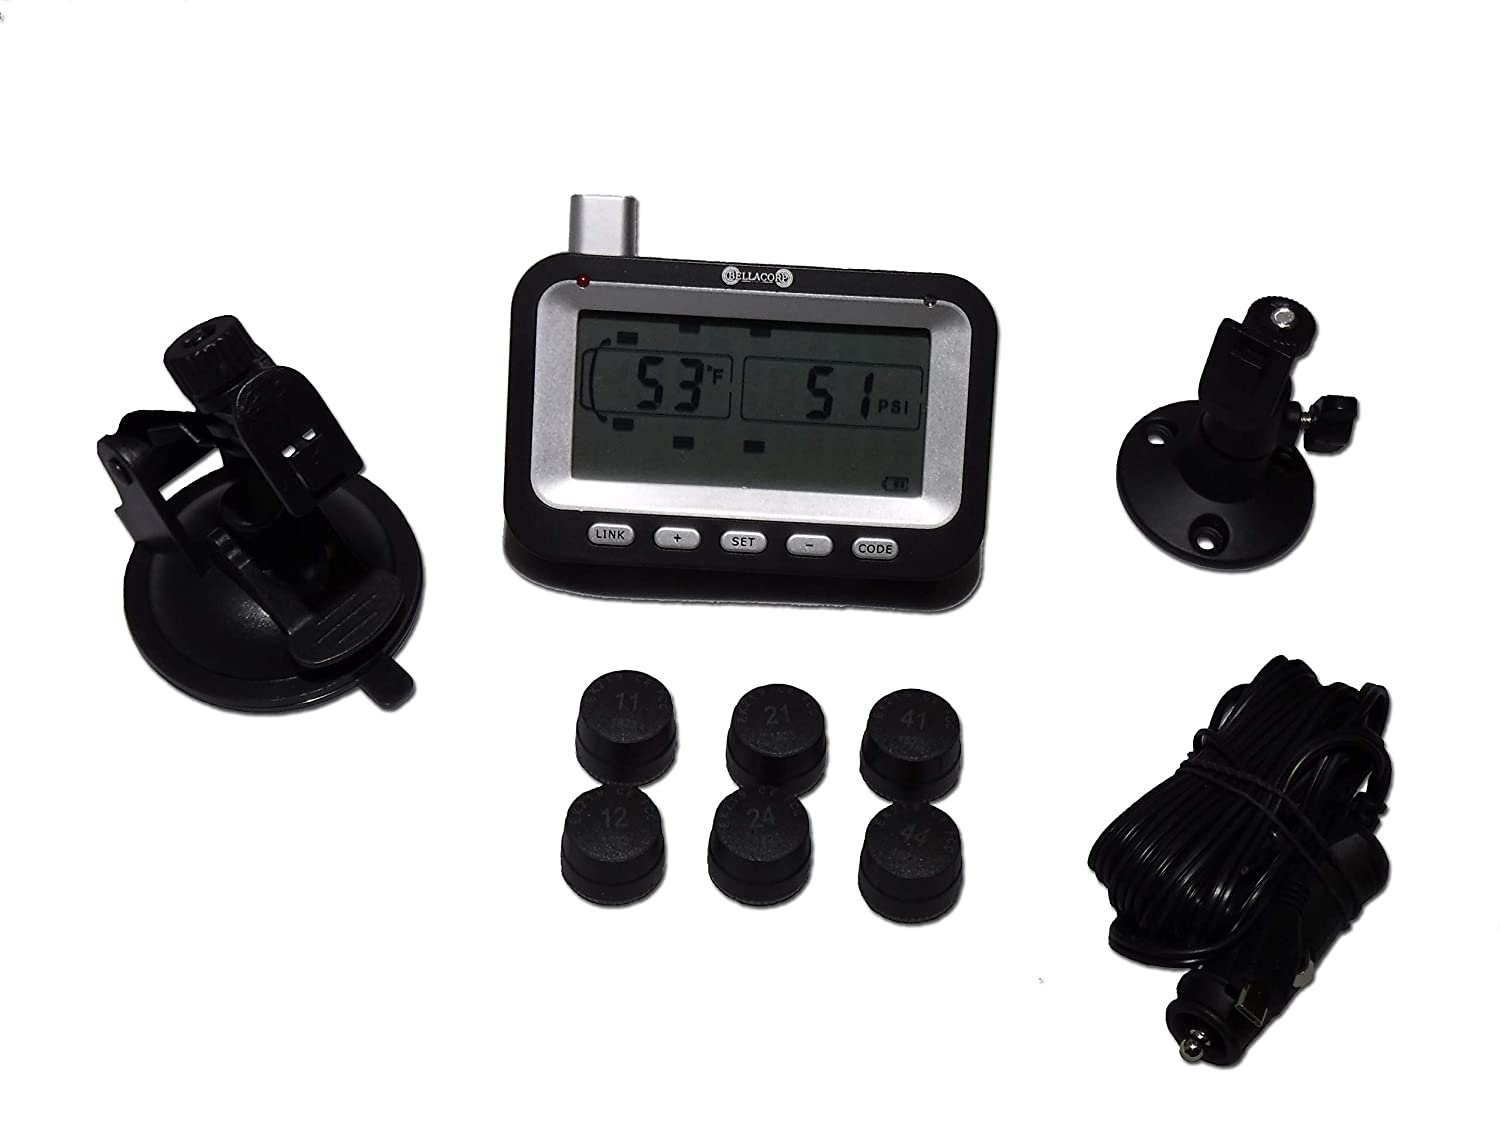 Camper or Trailer Tractor Truck Van 4x4 Car RV SUV Bellacorp Tire Pressure Monitoring System TPMS 4 Truck Sensors for Fifth Wheel